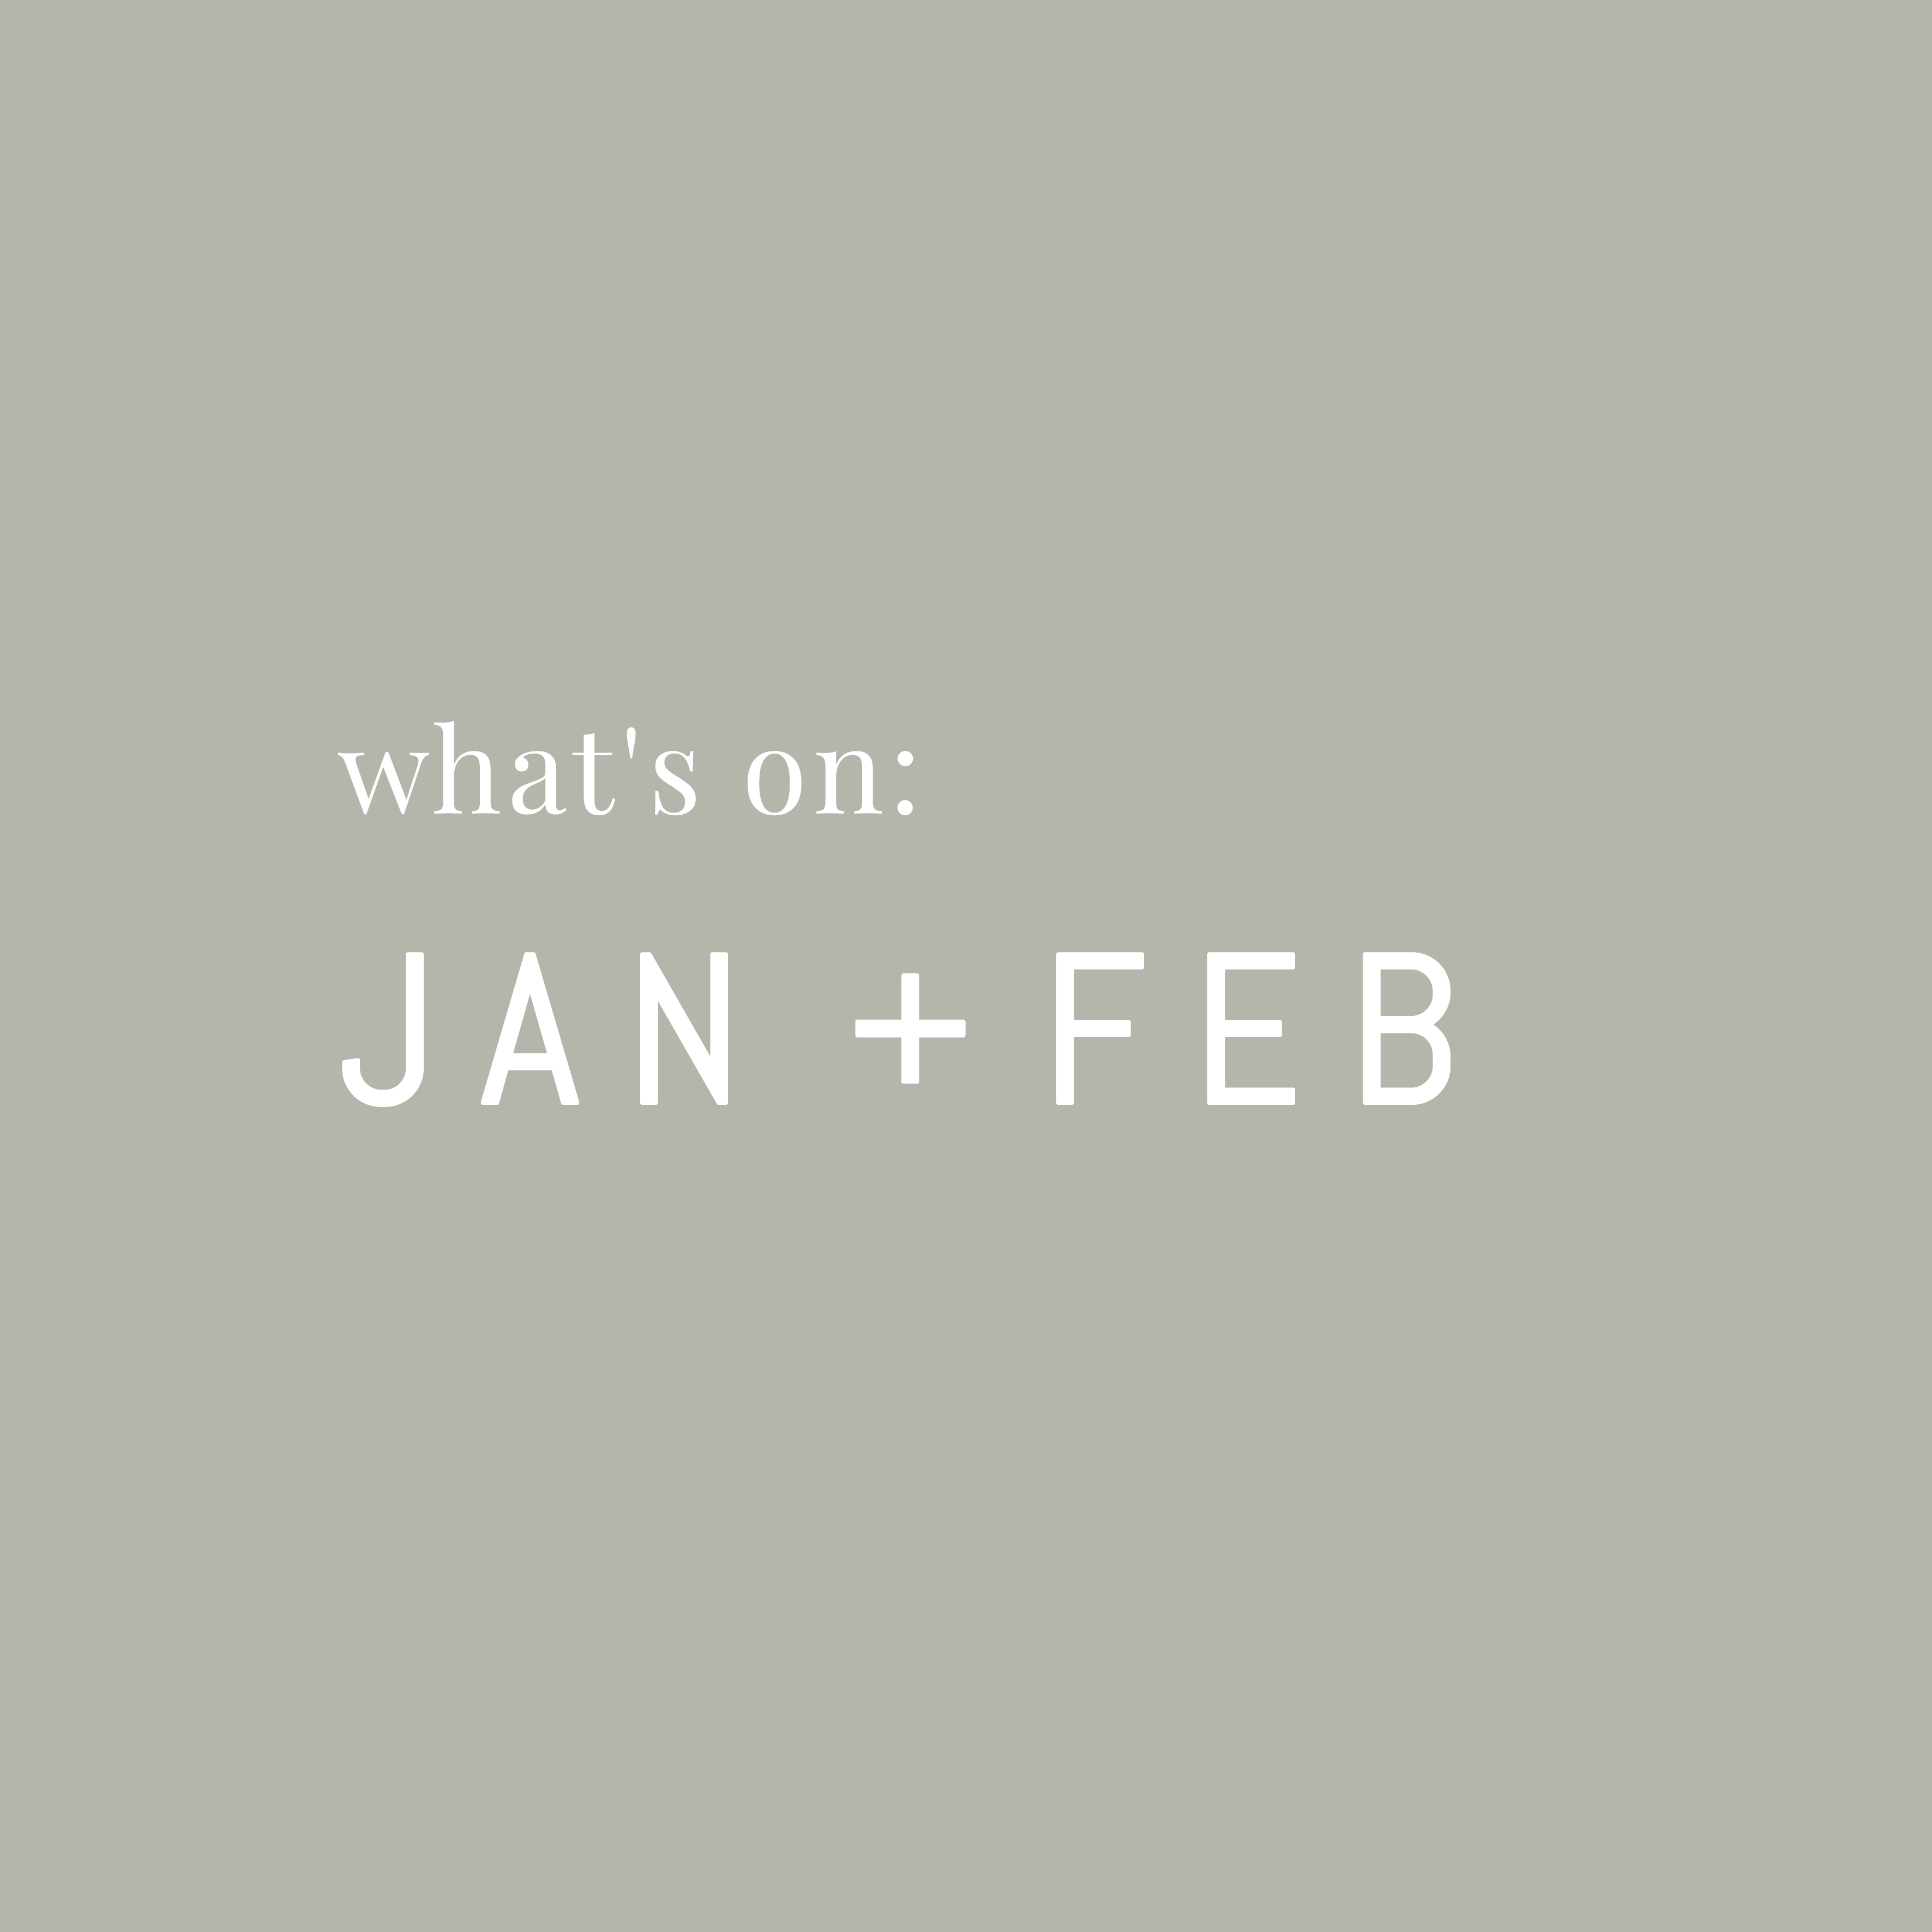 What's on with the Friends in Jan + Feb